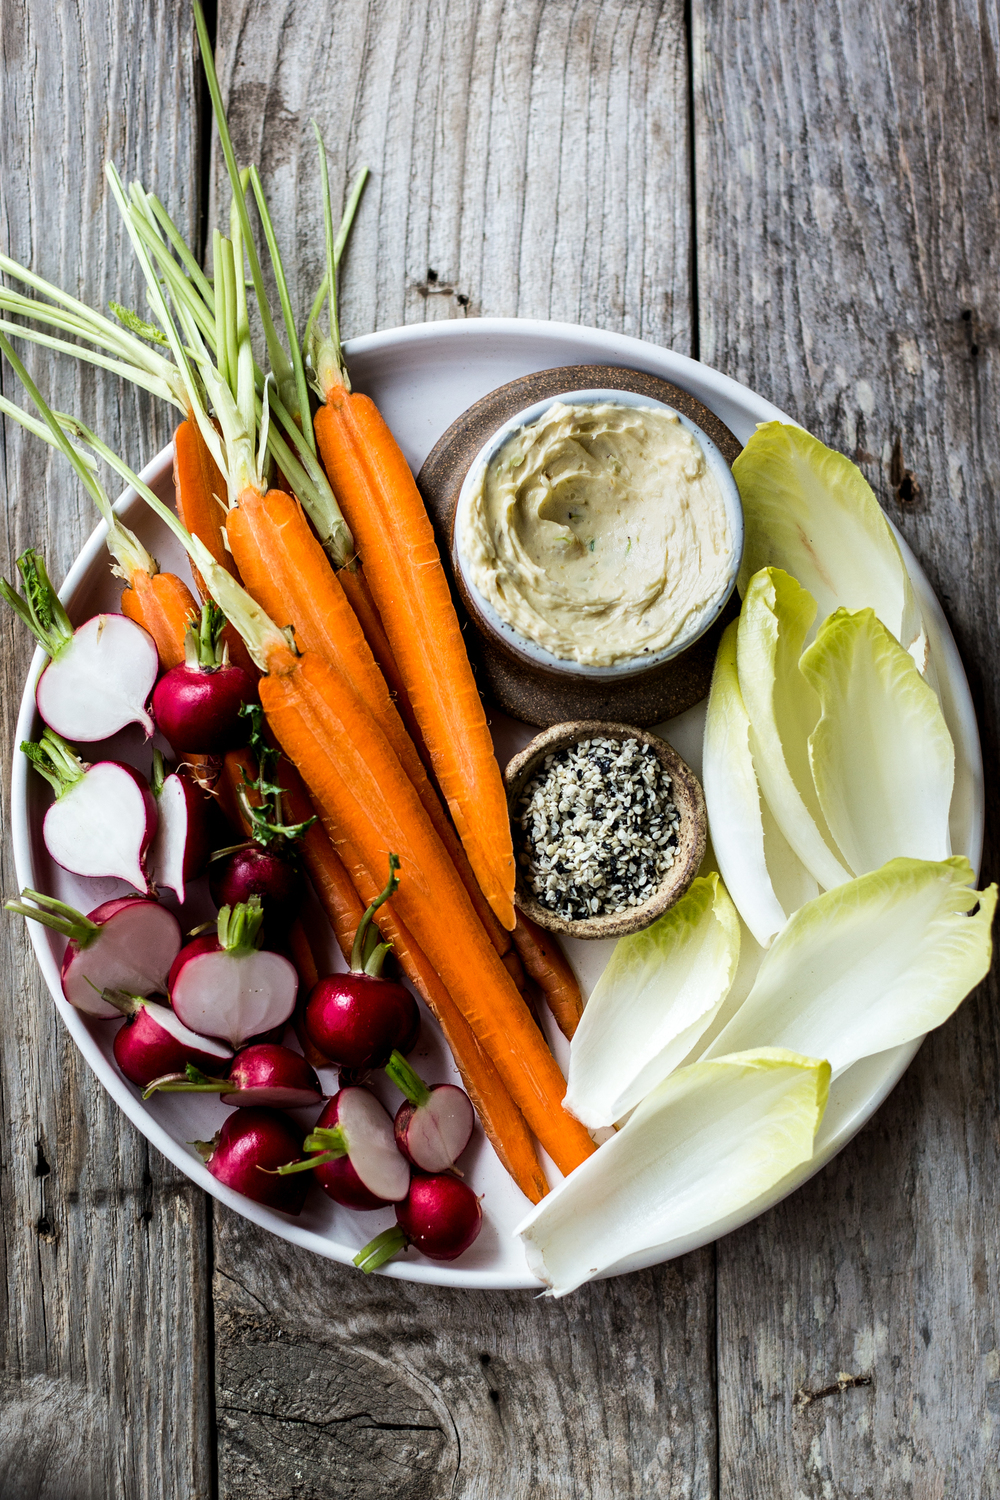 Scallion Miso Butter with Veggies  (this butter is addicting. Dip any of the veggies--sliced beets, turnips and even toasted bread or crackers!